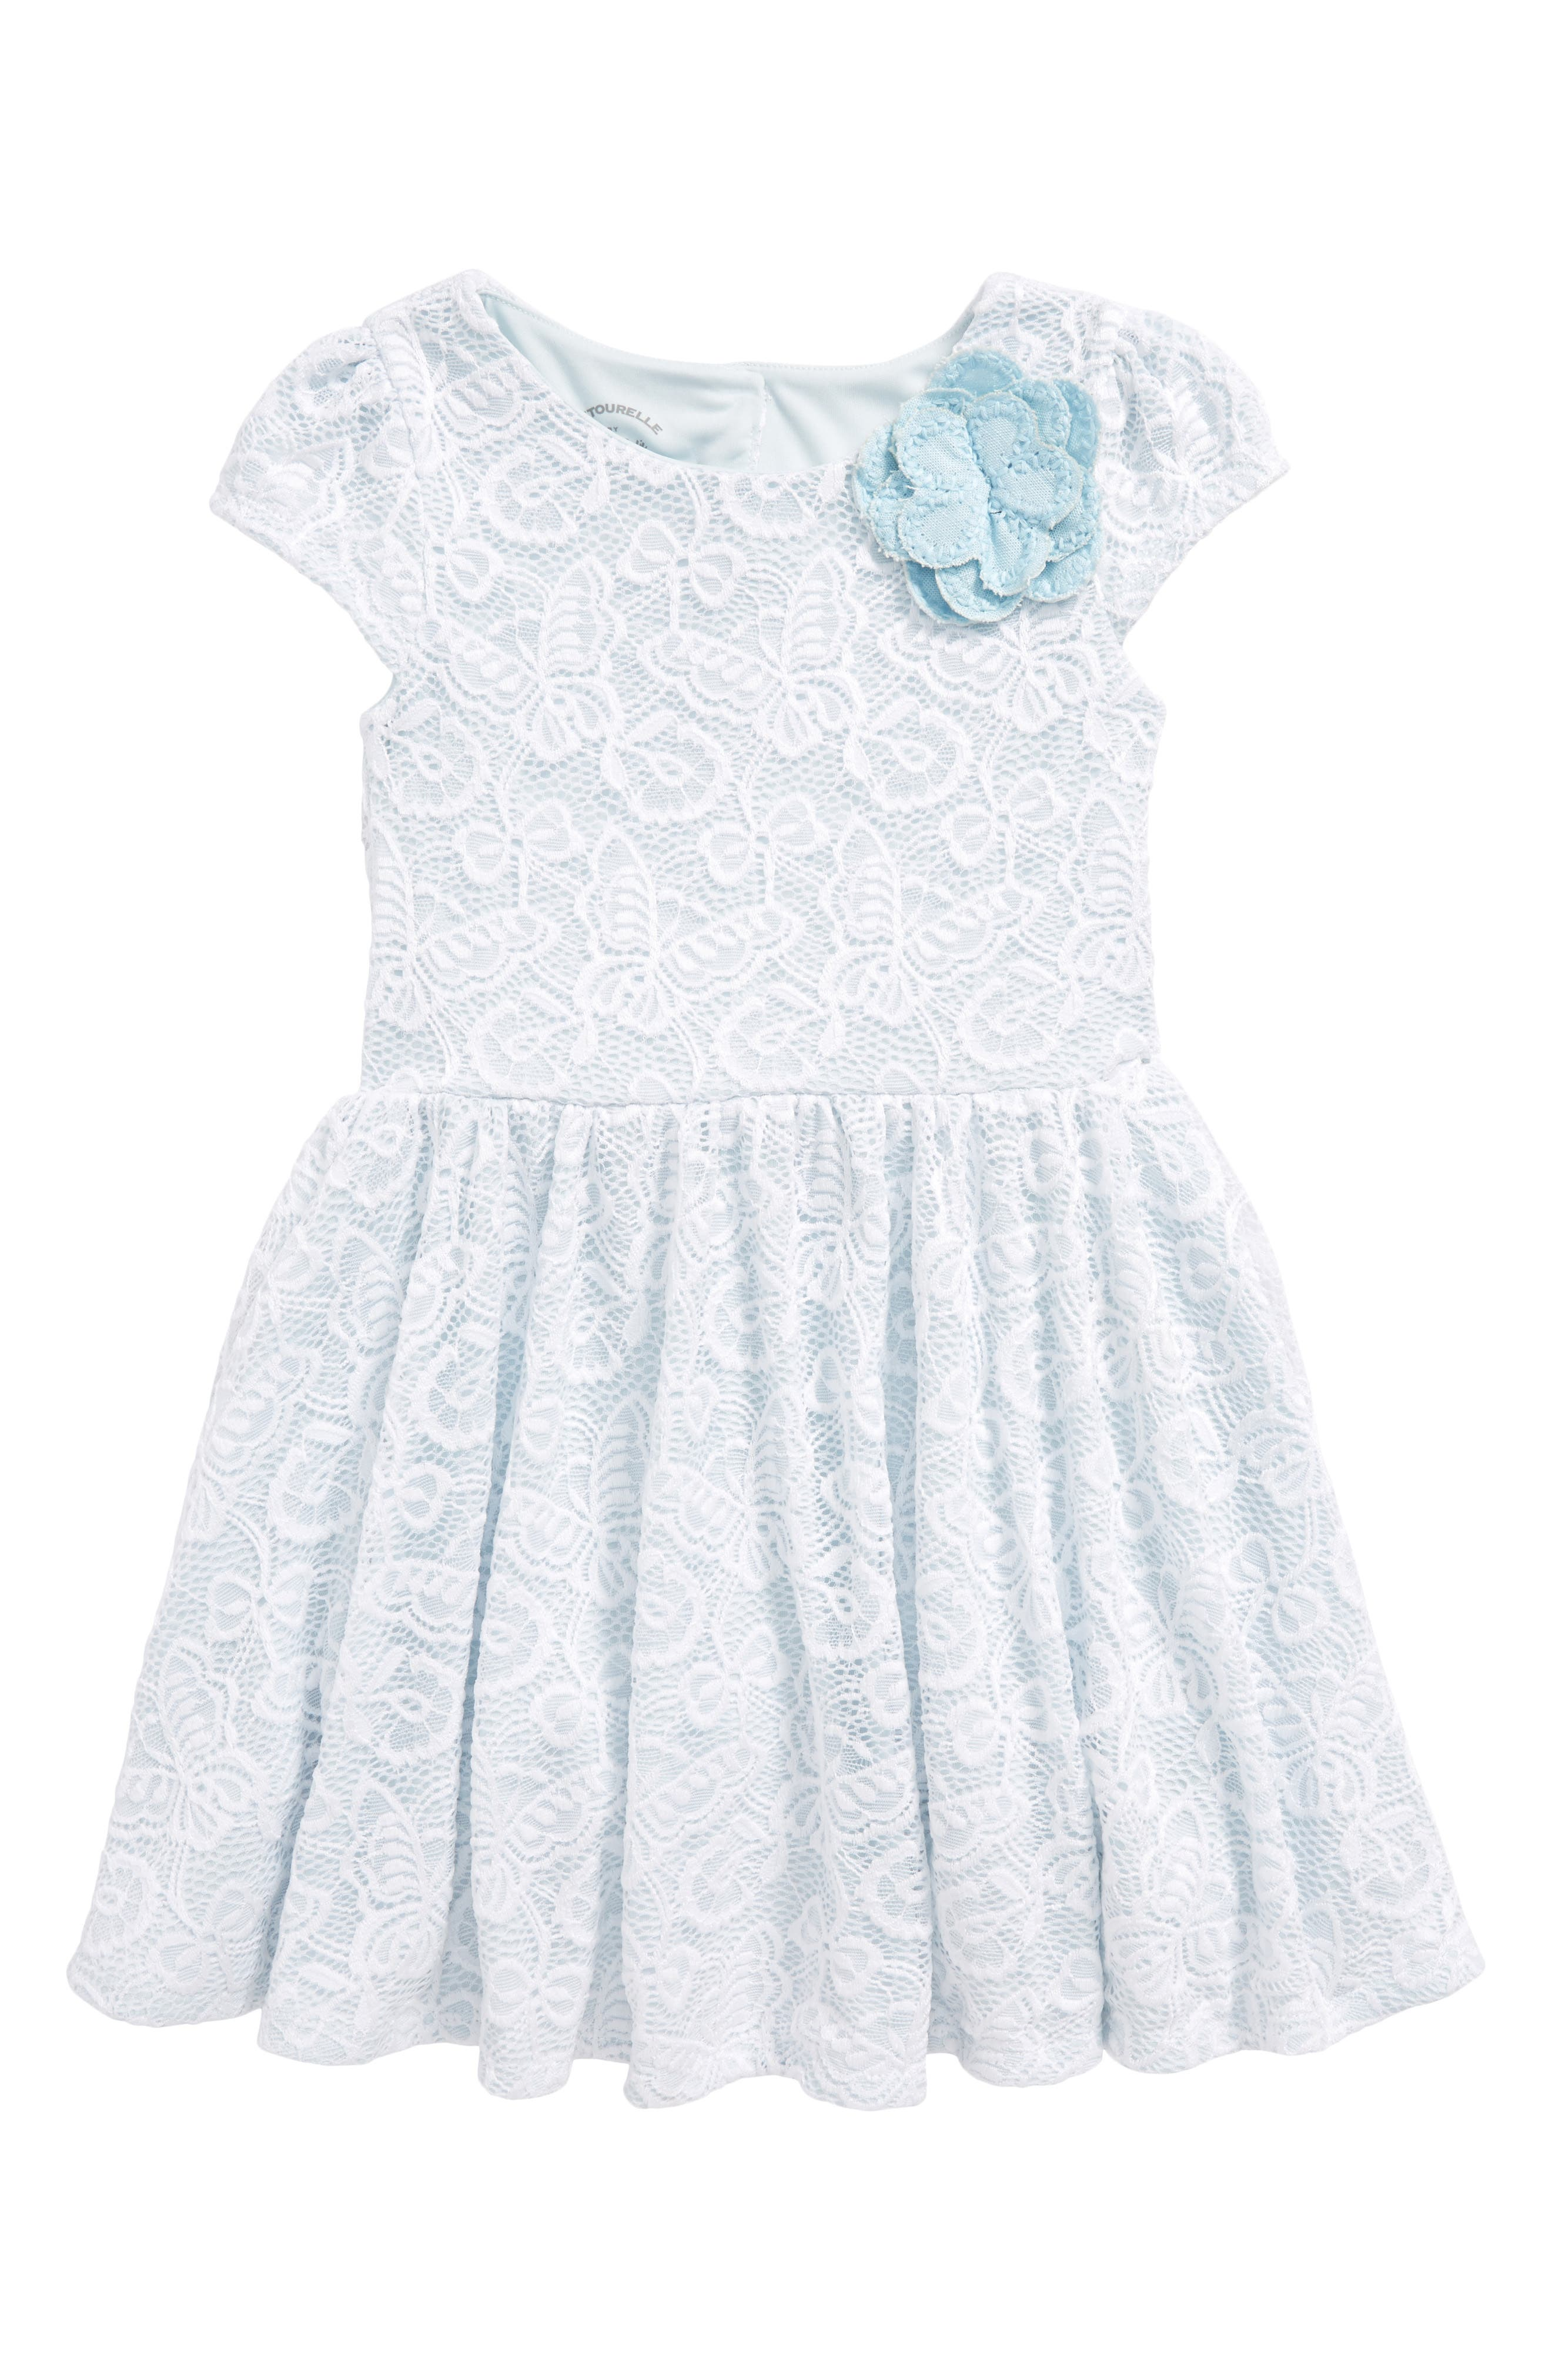 Pastourelle by Pippa and Julie Lace Skater Dress,                             Main thumbnail 1, color,                             White